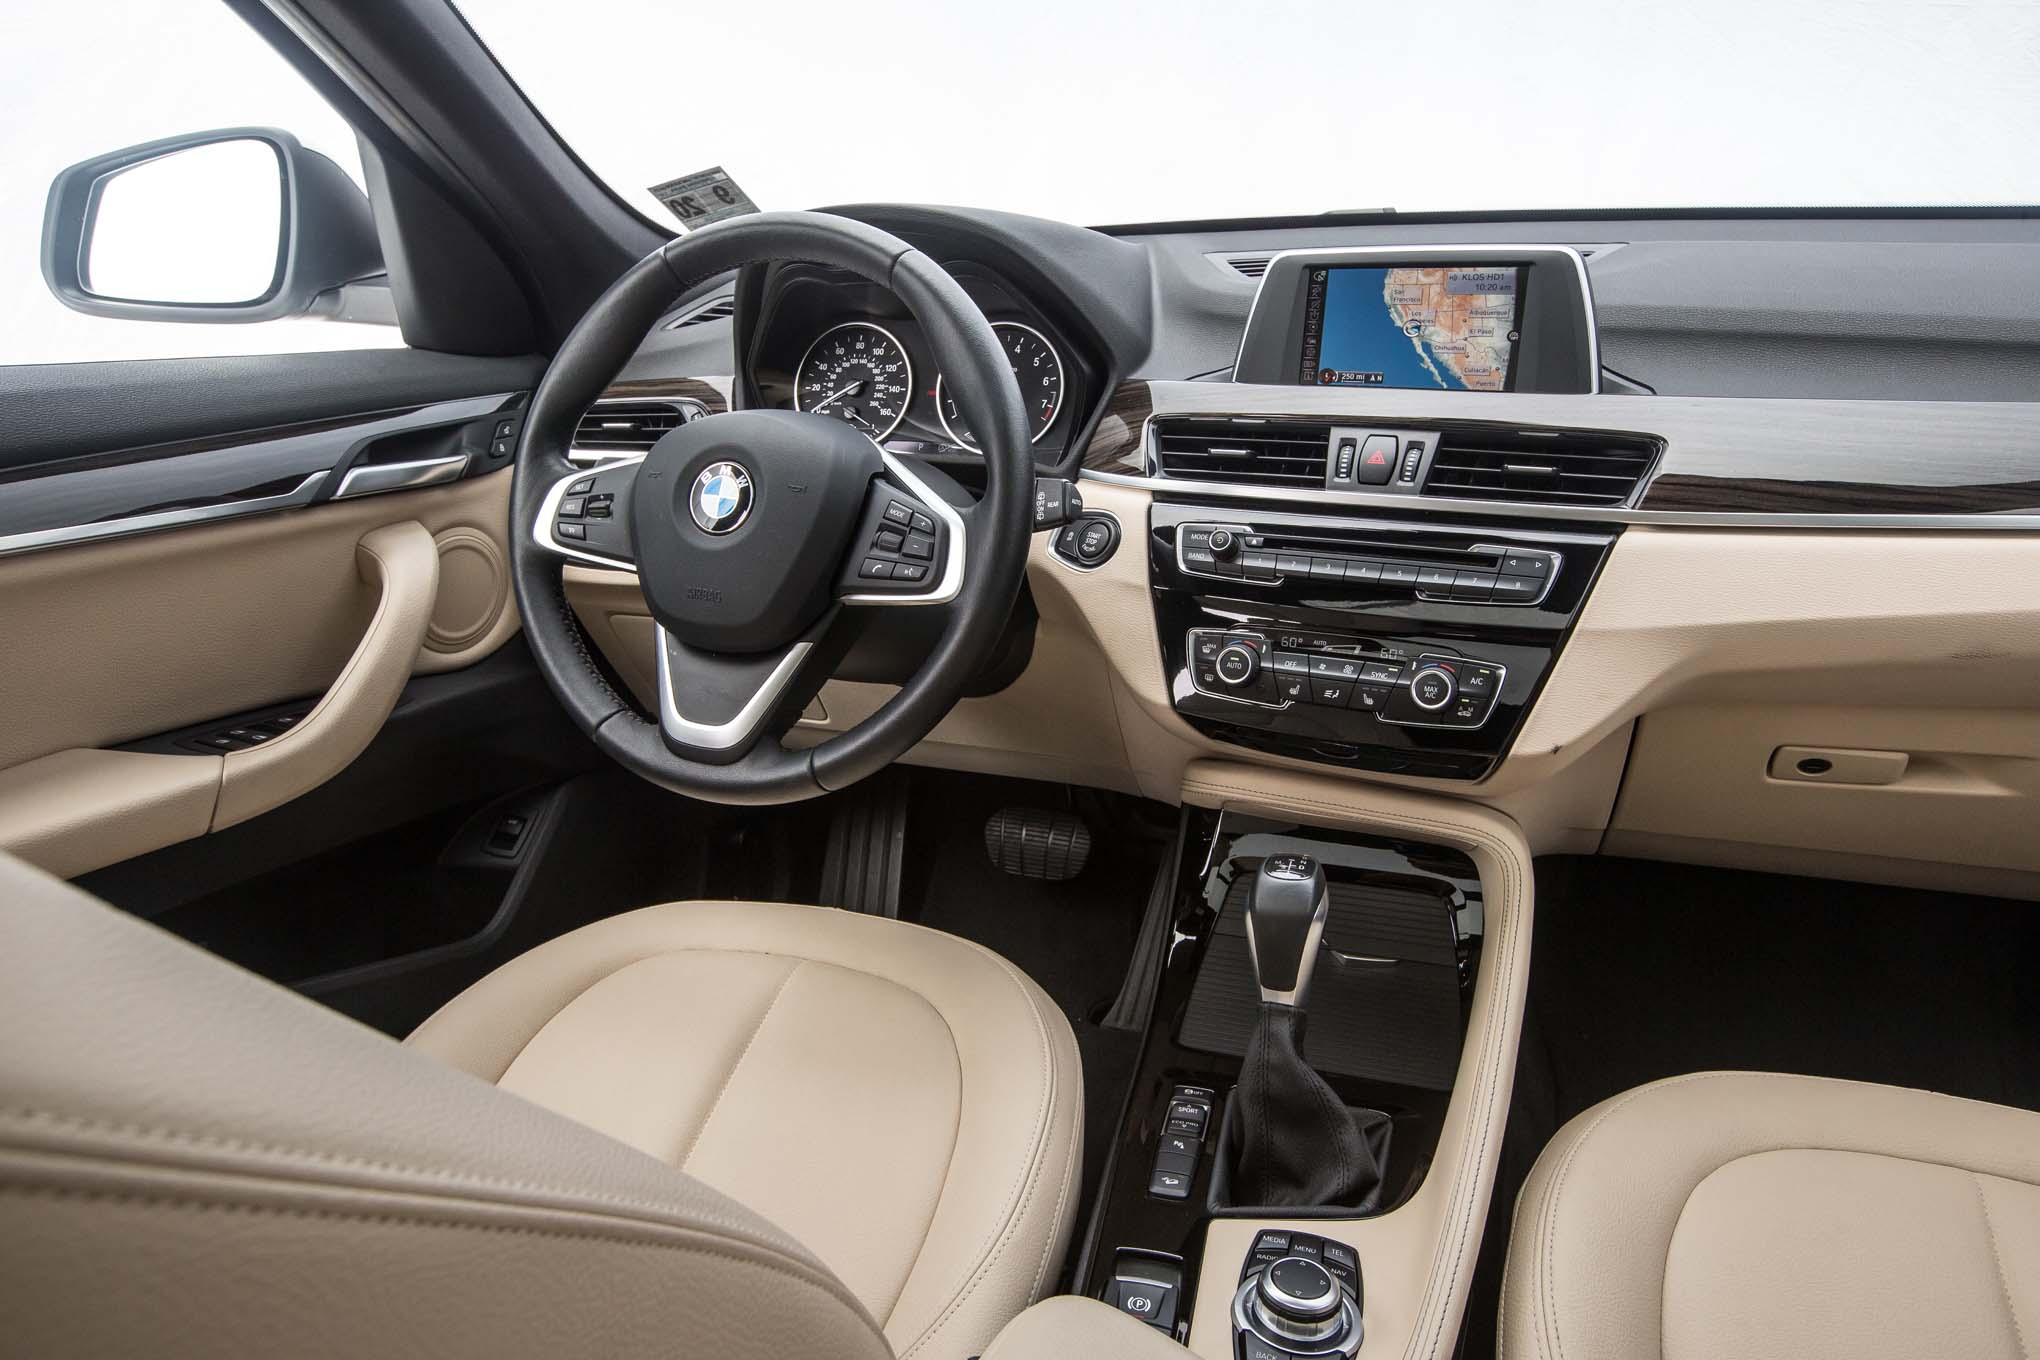 2017 BMW X1 XDrive28i Interior Driver Cockpit And Dash (View 11 of 23)